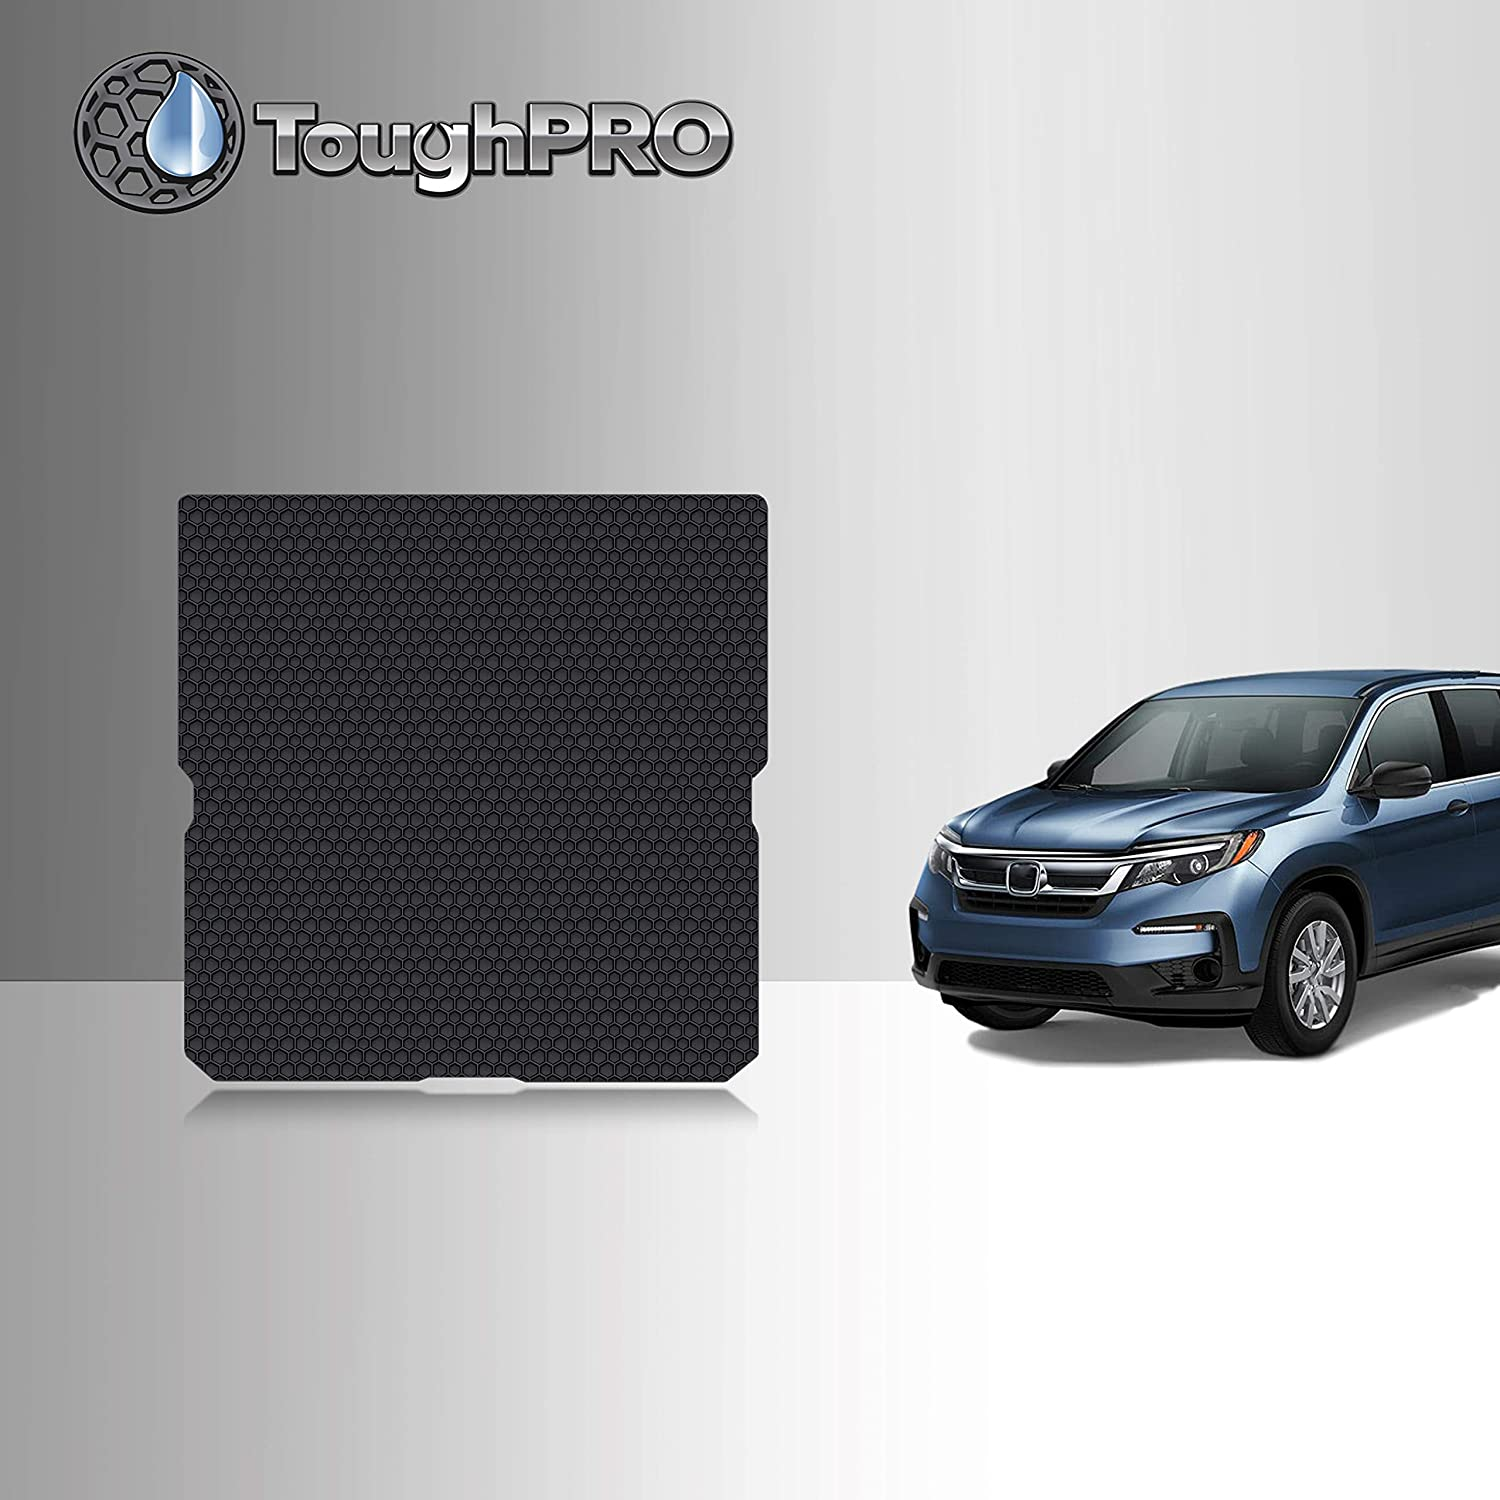 TOUGHPRO Cargo/Trunk Mat Accessories Compatible with Honda Pilot - All Weather - Heavy Duty - (Made in USA) - Black Rubber - 2016, 2017, 2018, 2019, 2020